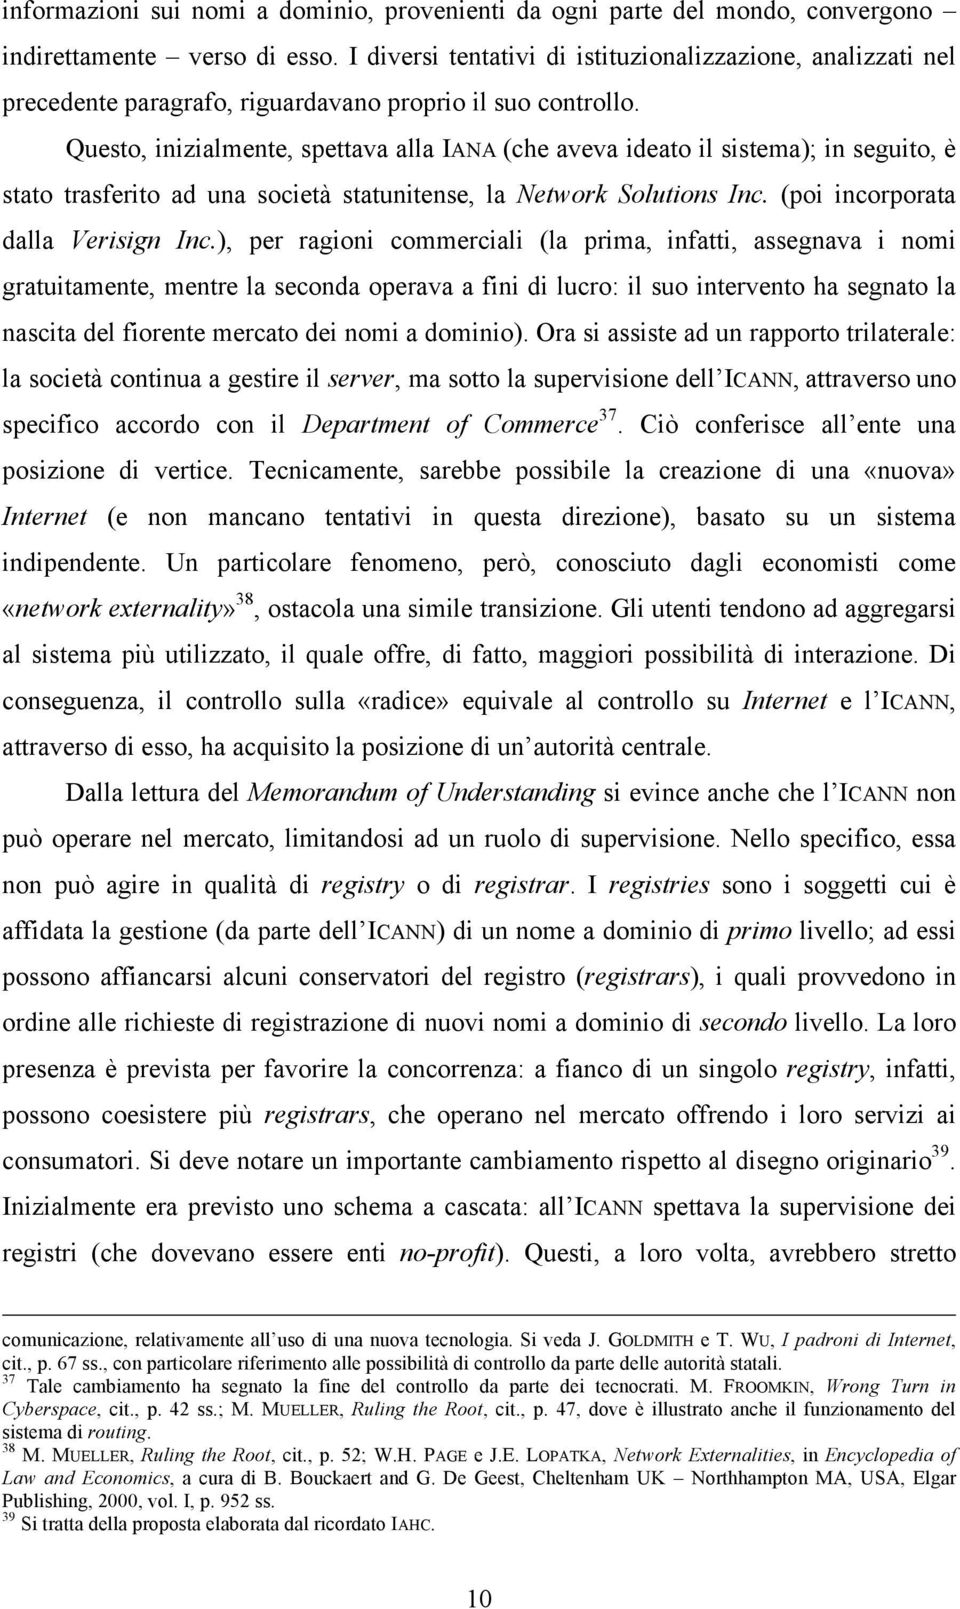 Questo, inizialmente, spettava alla IANA (che aveva ideato il sistema); in seguito, è stato trasferito ad una società statunitense, la Network Solutions Inc. (poi incorporata dalla Verisign Inc.